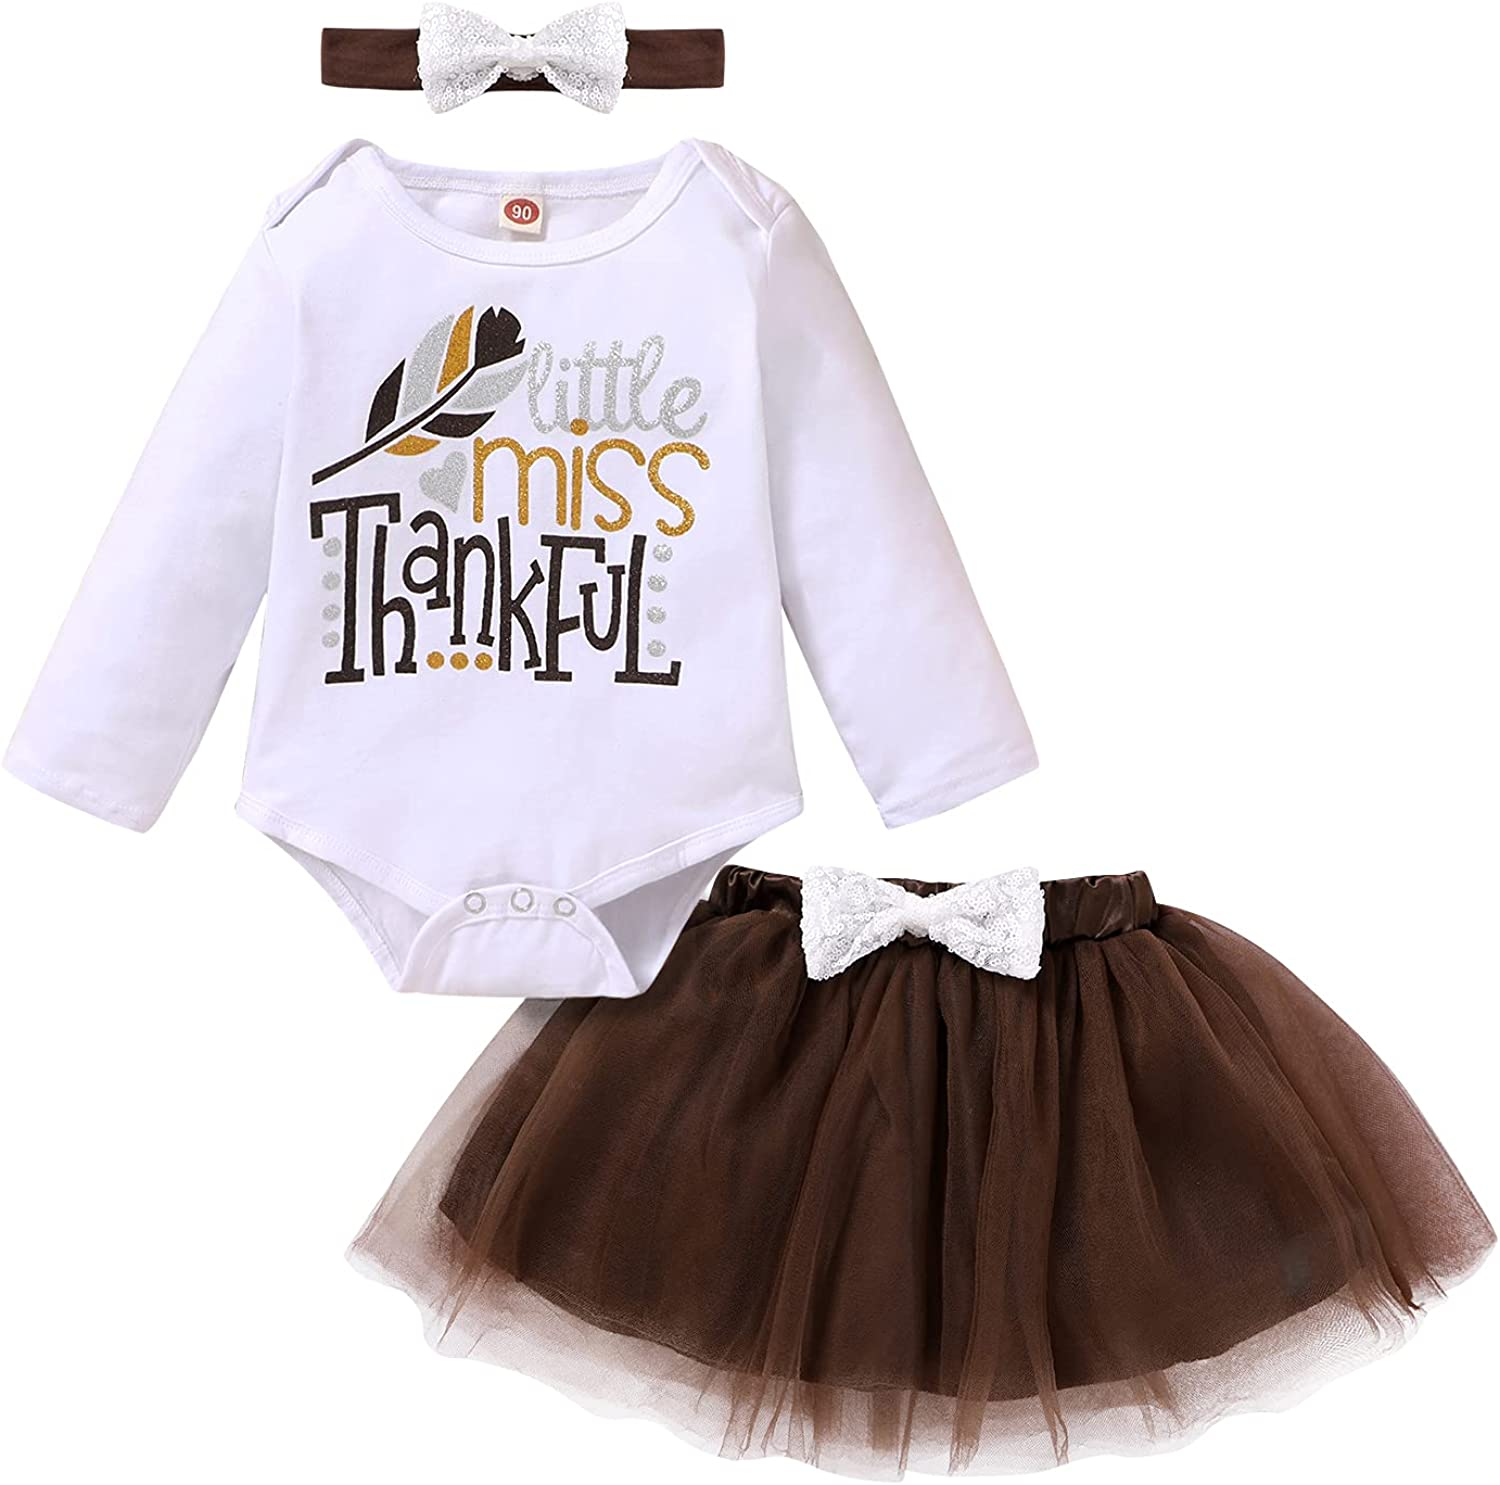 Newborn Baby Girls Thanksgiving Outfits Letter Romper Top Tutu Skirt Dress Clothes Set with Bow Headband 3Pcs